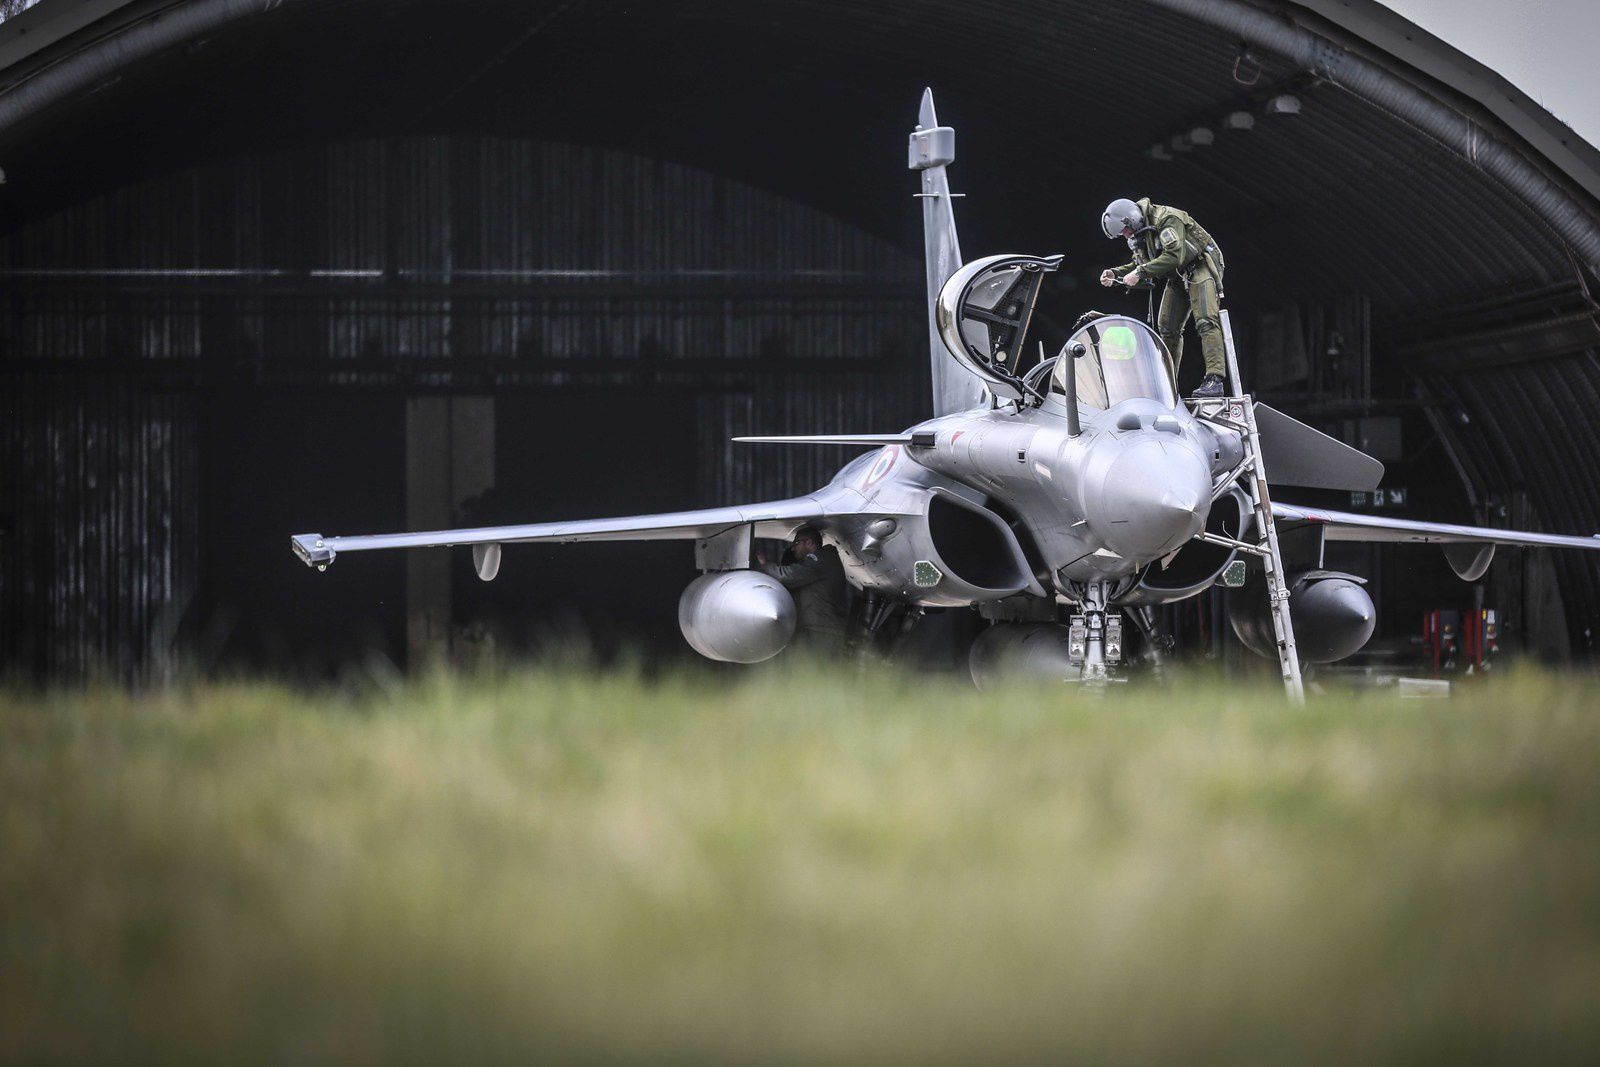 PHOTOS - L'Armée de l'Air et la Royal Air Force engagées dans l'exercice Griffin Strike